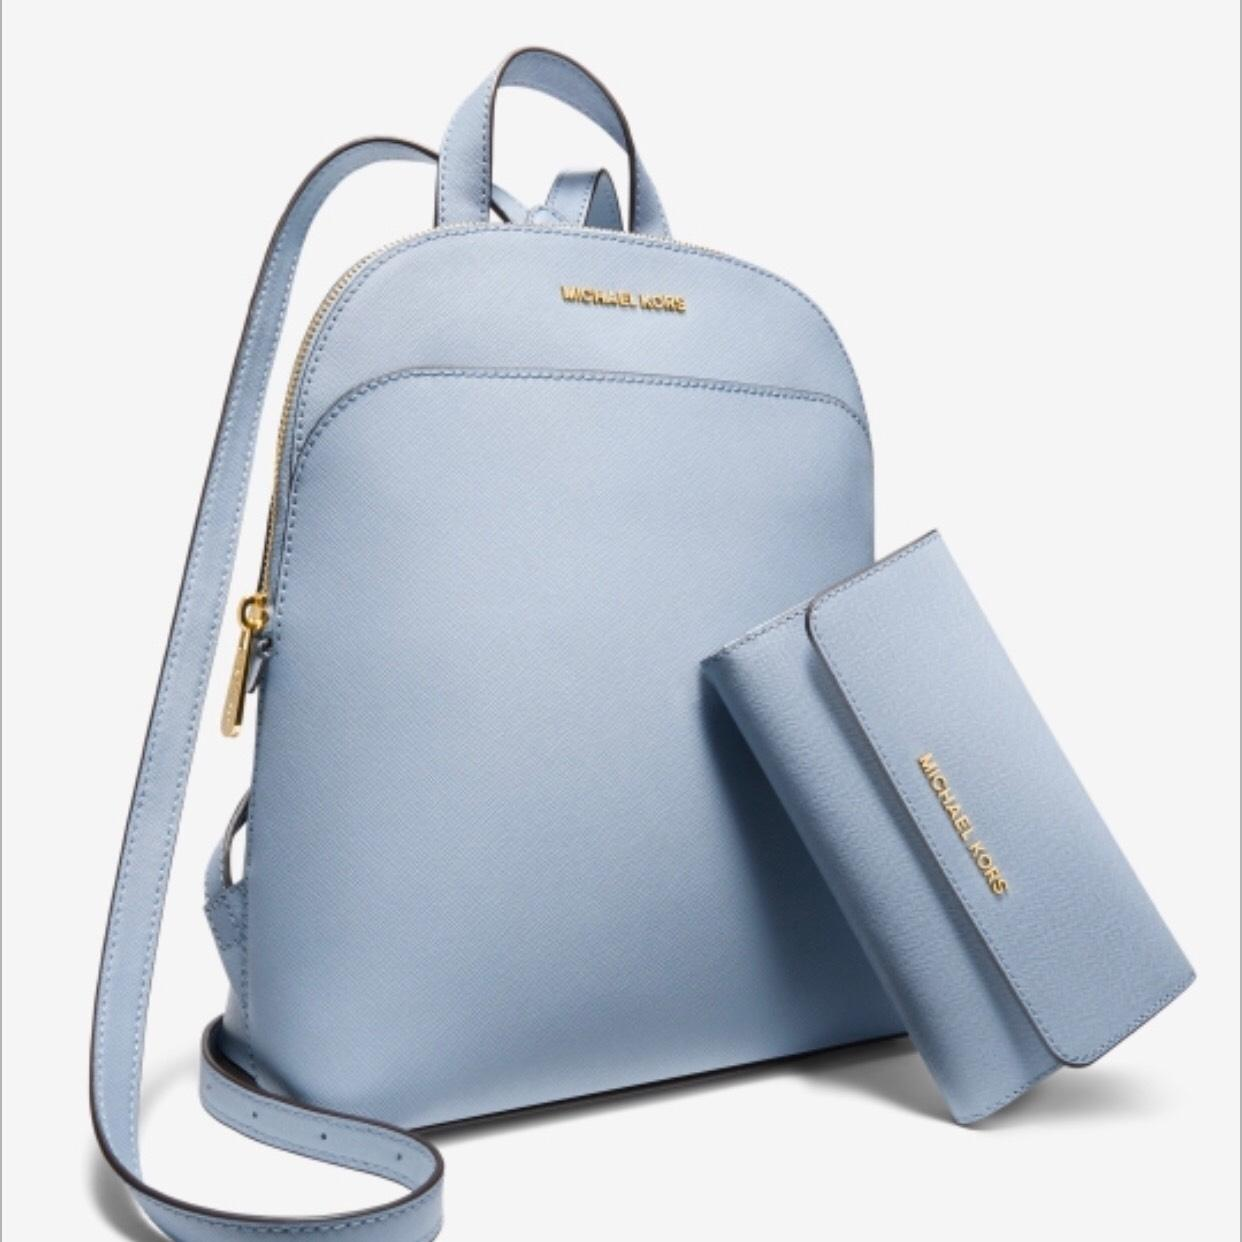 5ff5a19bc090 closeout michael kors evie flower small pebbled leather backpack pale blue  gold 368 nwt 03903 fa2e5; new zealand michael kors emmy handbagwallet set  ...